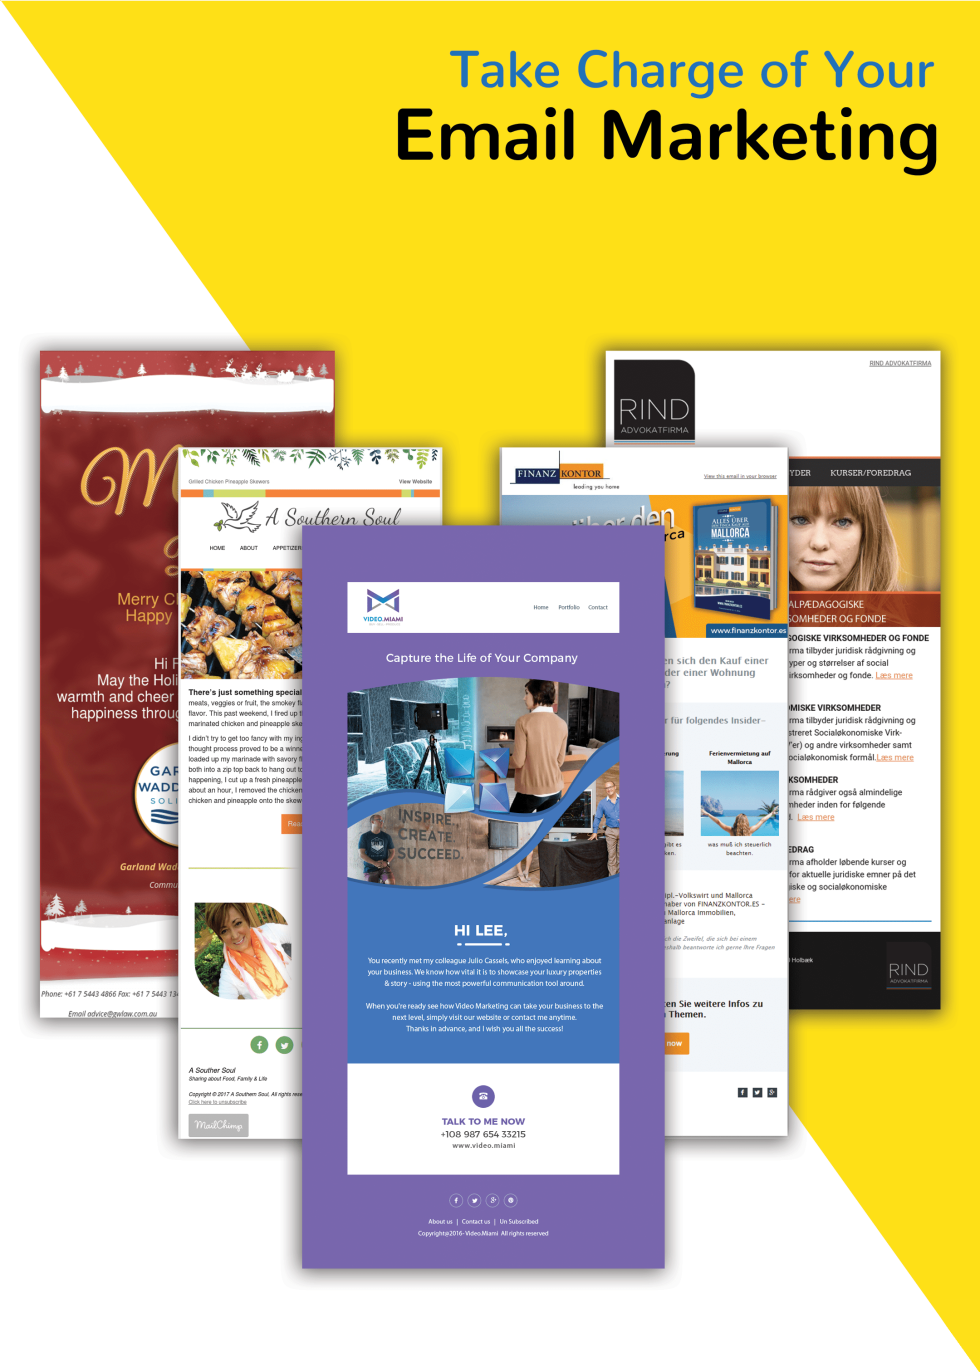 Image of newsletters with the text take charge of your email marketing.